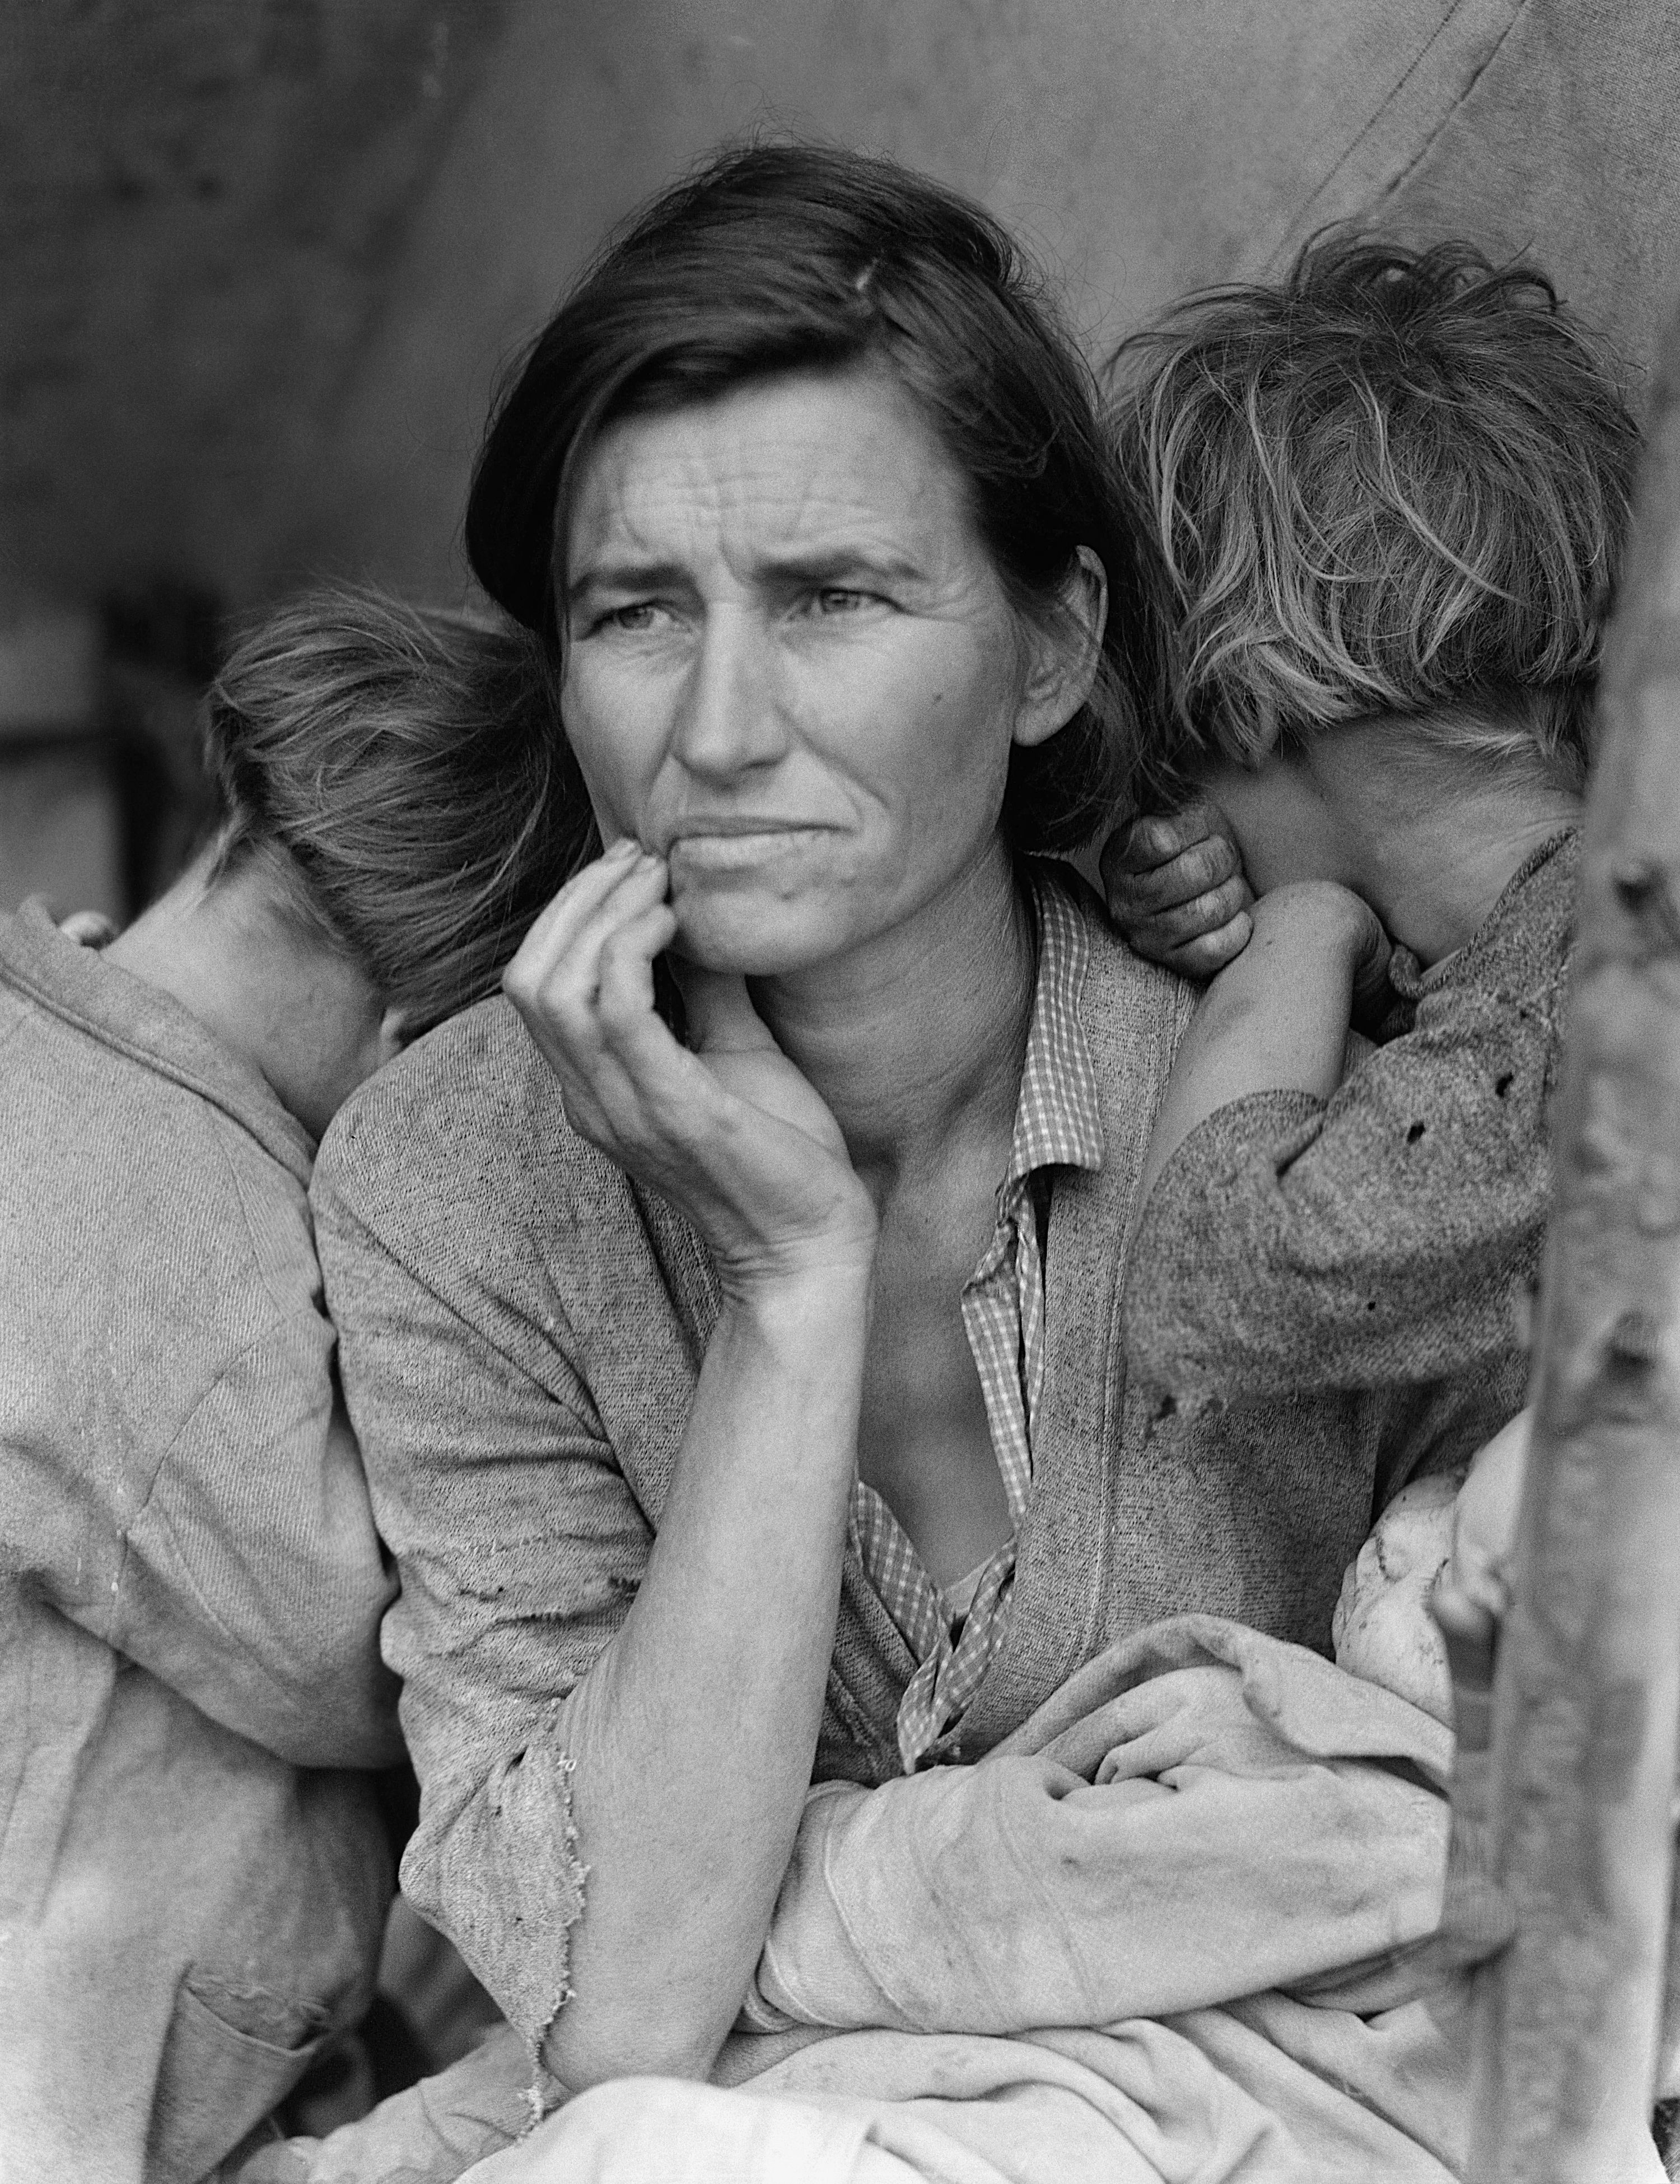 1932. 32-year-old migrant mother of seven children.